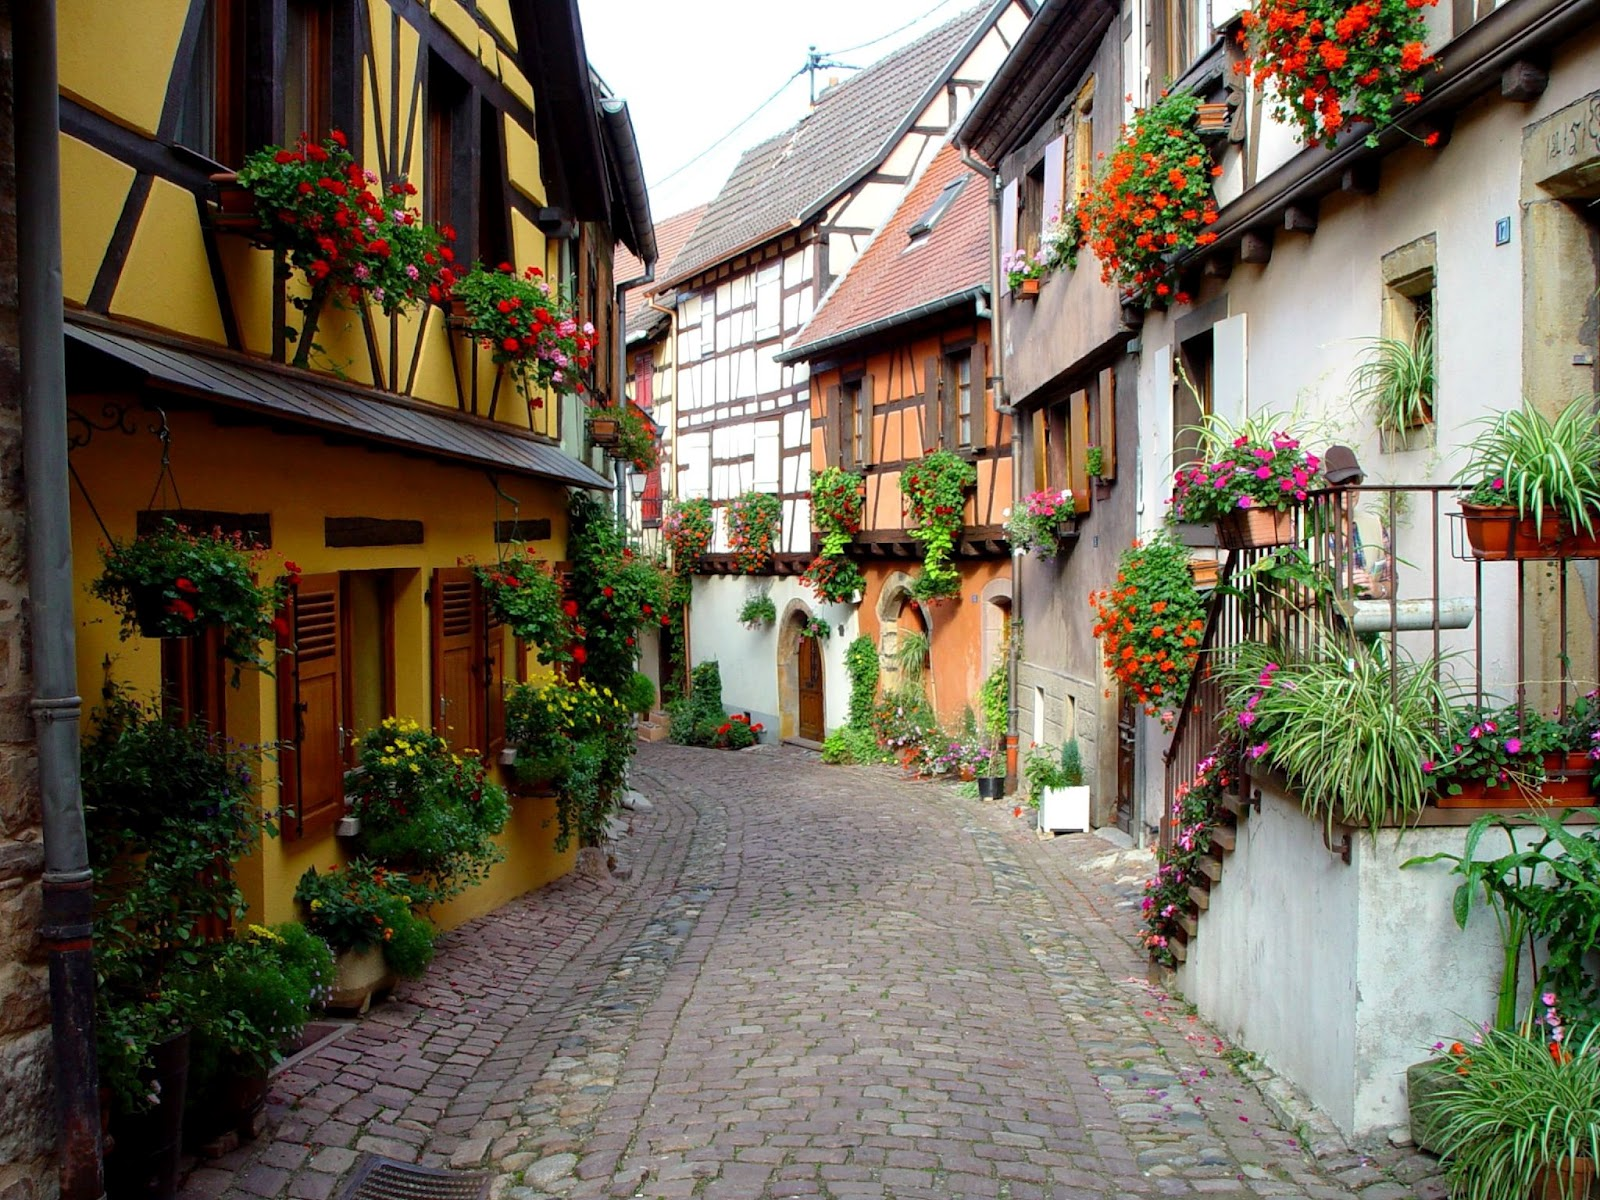 Eguisheim, Alsace